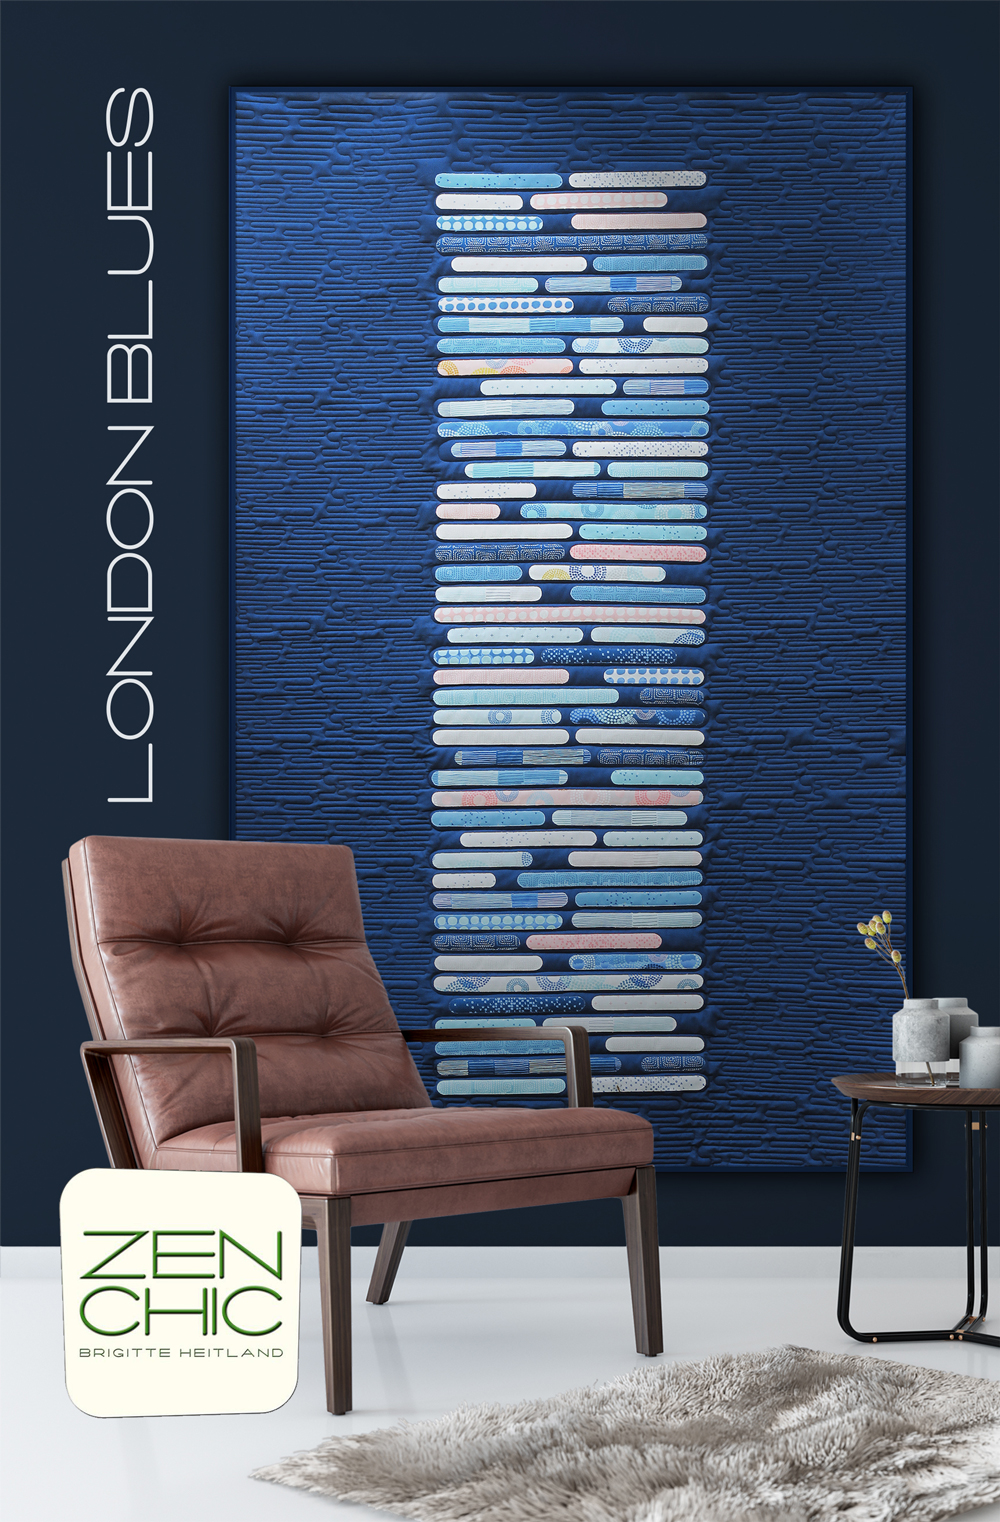 The youthful, classy look of the London Blues quilt pattern from Zen Chic featuring the BREEZE fabric collection makes a stunning addition to any room.